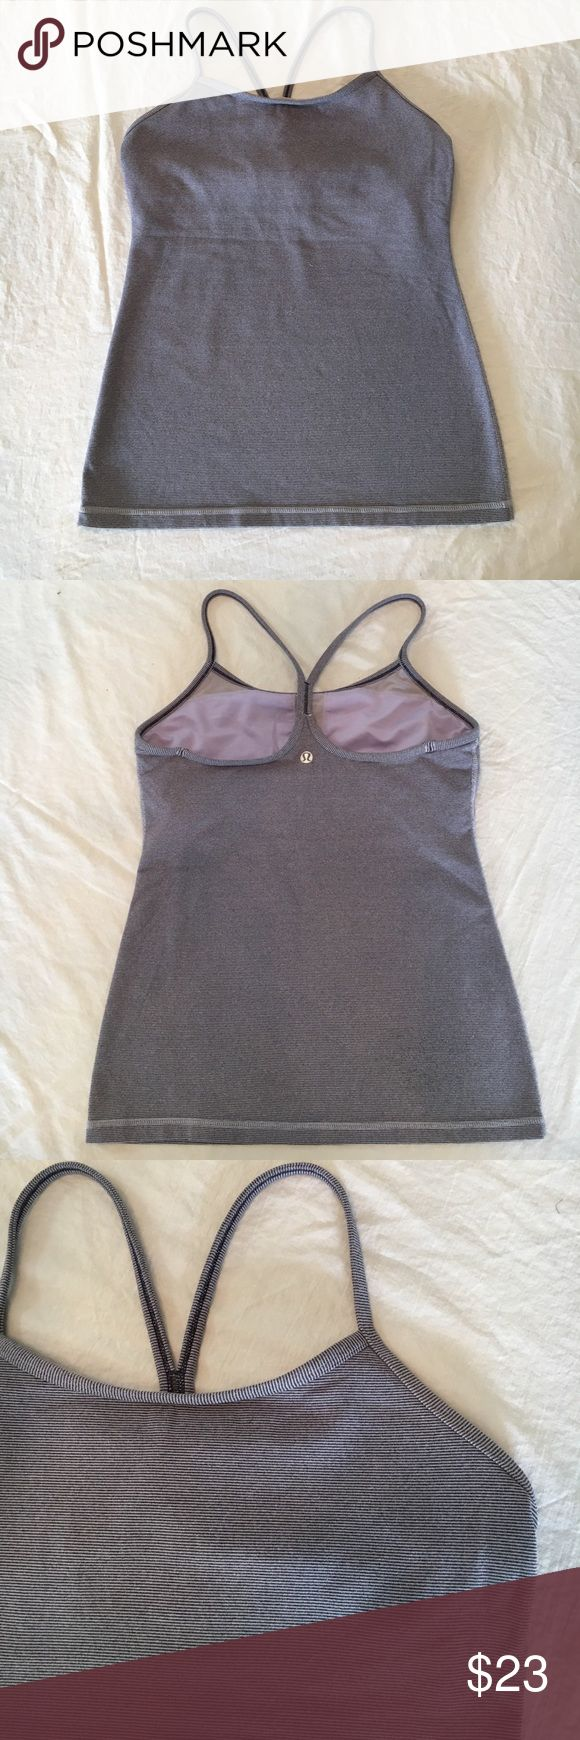 """LULULEMON PURPLE CAMI YOGA FITNESS TOP SZ 6 LULULEMON purple yoga fitness top. Pre owned, gently worn and in very good condition. No stains, rips, holes or odors. Smoke free home and environment. Size is 6. Measurements: Armpit to armpit fat and side to side:15"""" length from top of strap to bottom of top:  23"""" lululemon athletica Tops Tank Tops"""